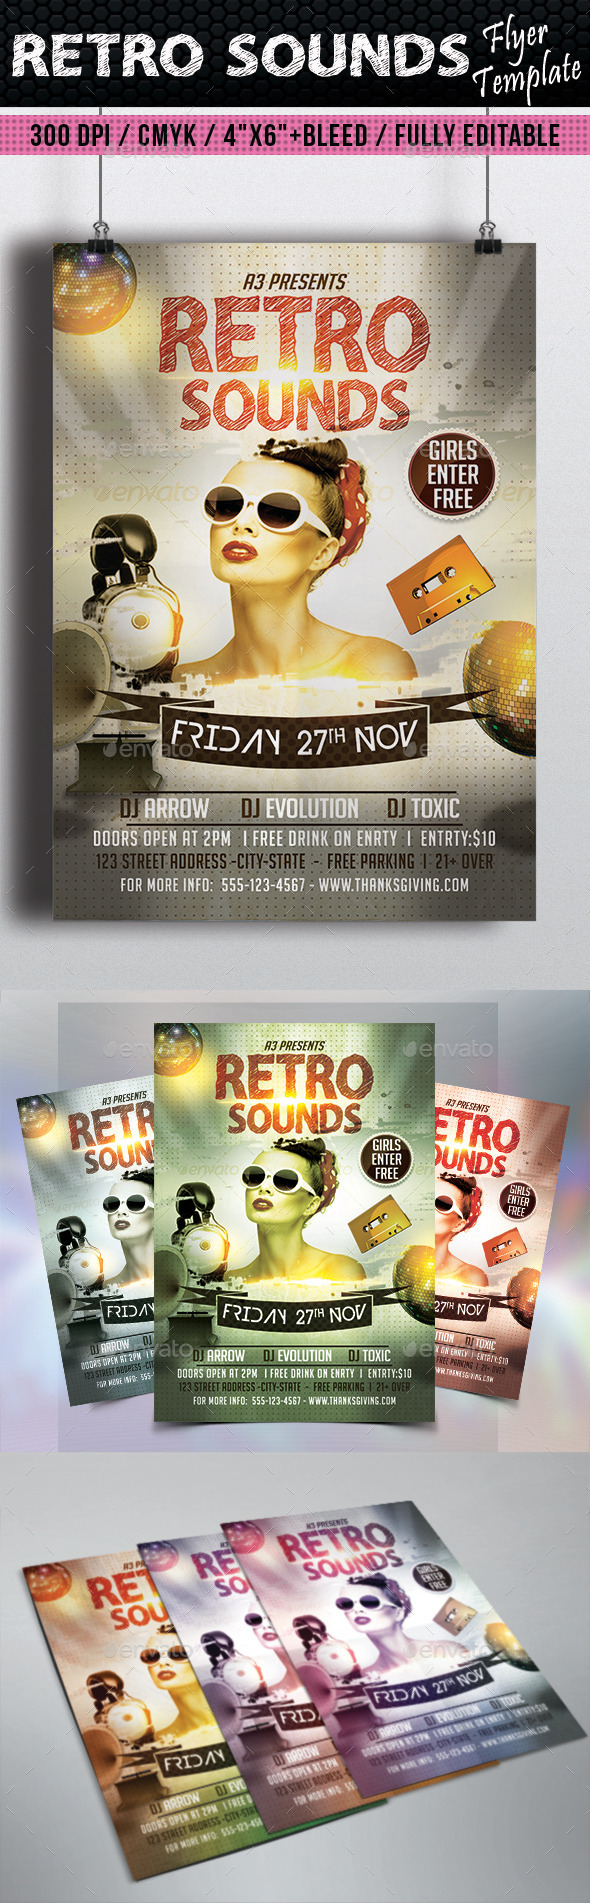 Retro Sounds Flyer Template - Clubs & Parties Events